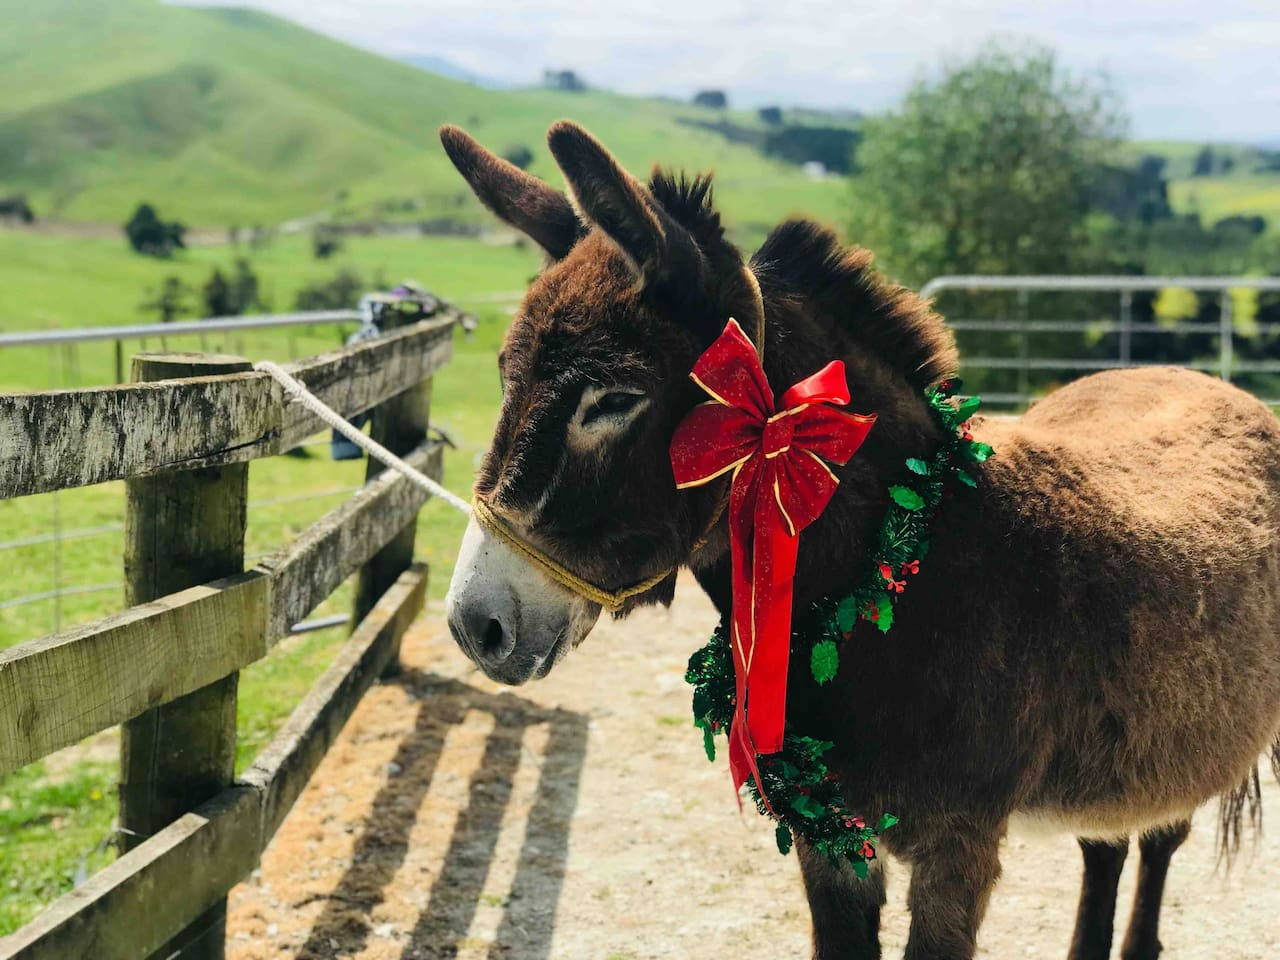 Charlie our friendly donkey looks forward to meeting you....